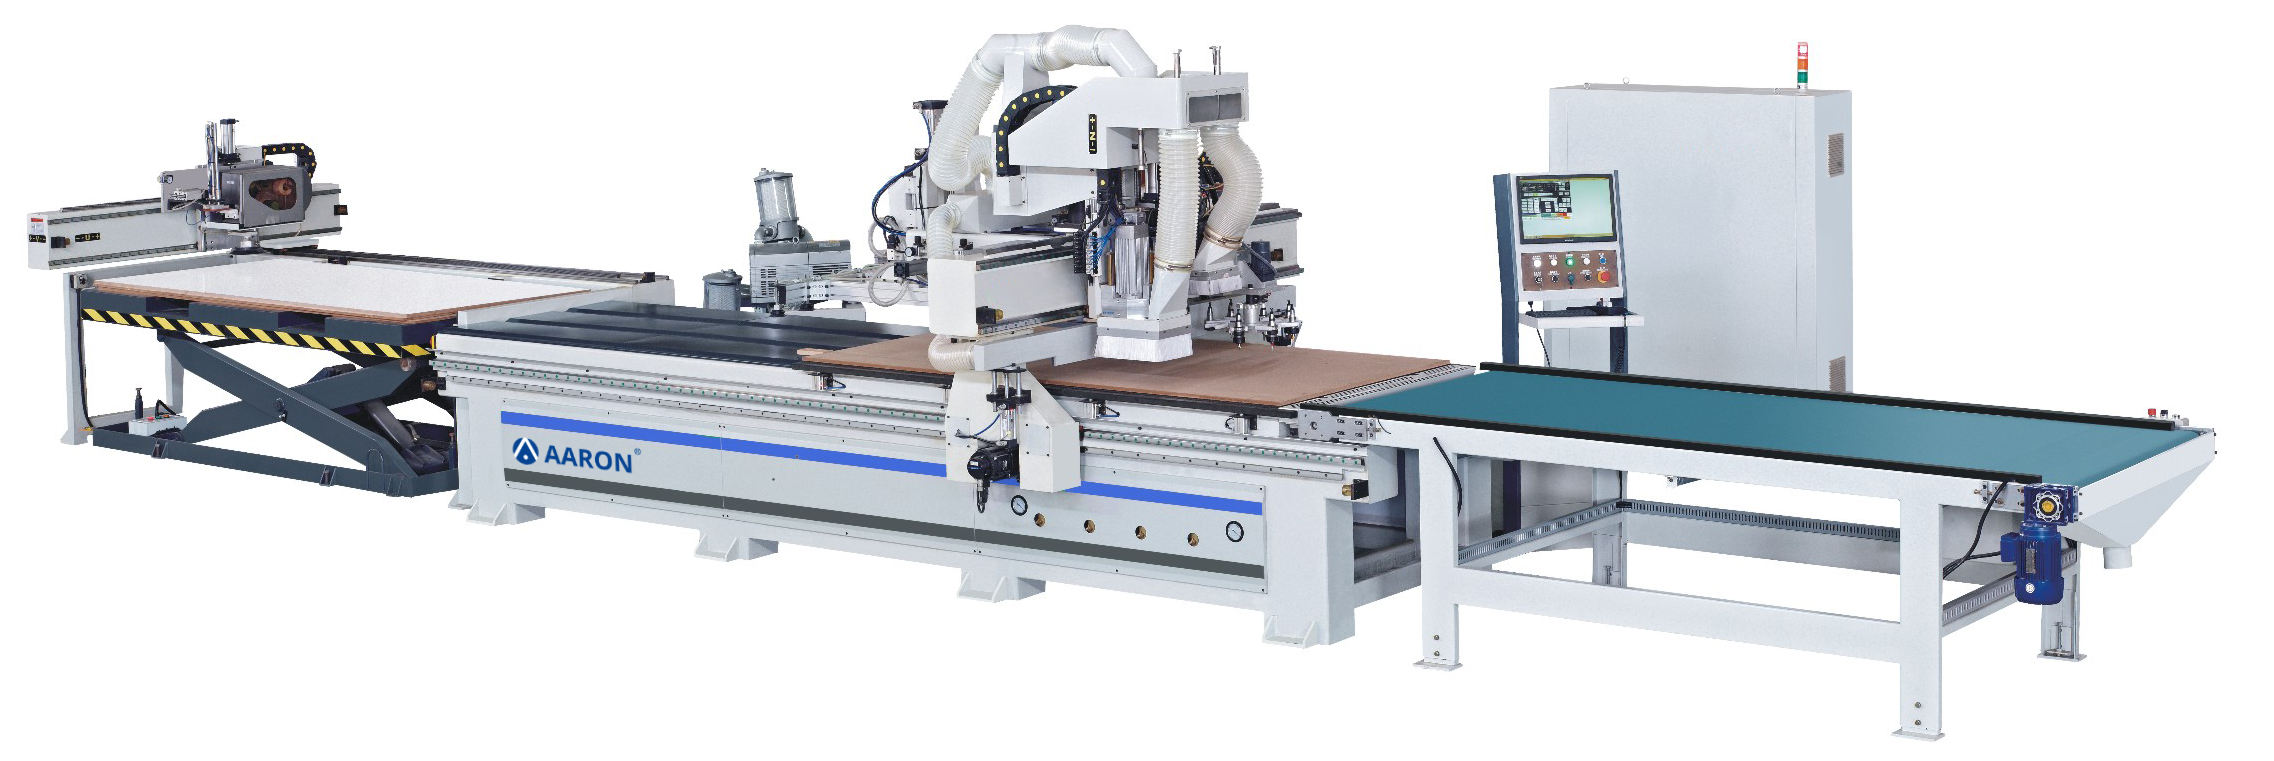 Aaron CNC51 - Premium CNC with Automatic Tool-Changer